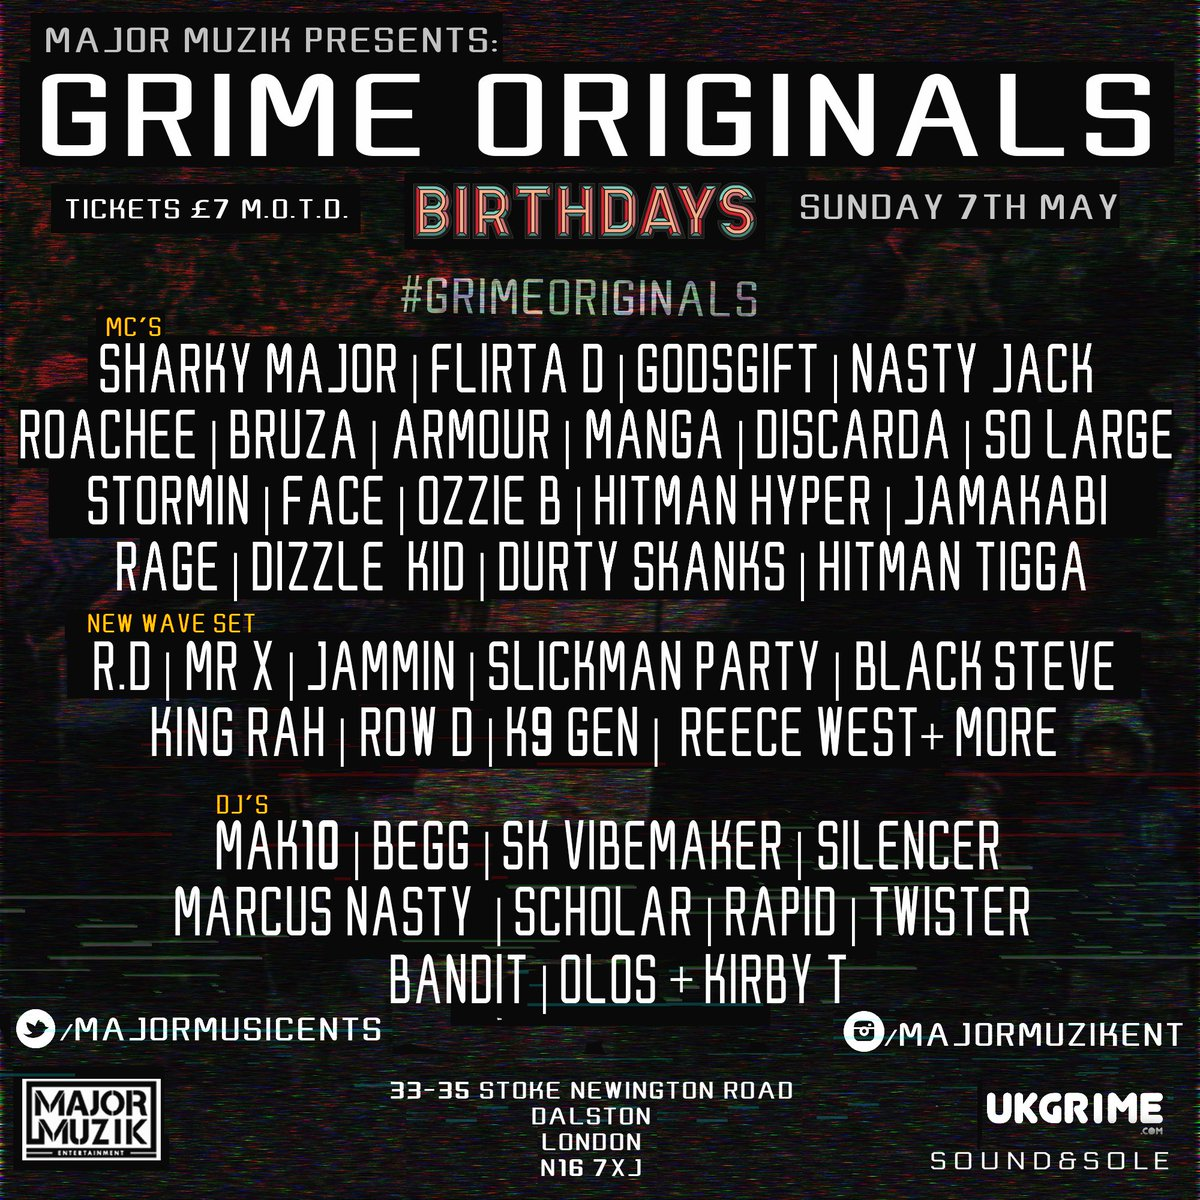 Grime Originals 7th May @_Birthdays BE THERE! Tickets: https://t.co/jr64ZbC7mF LAST ONE WAS